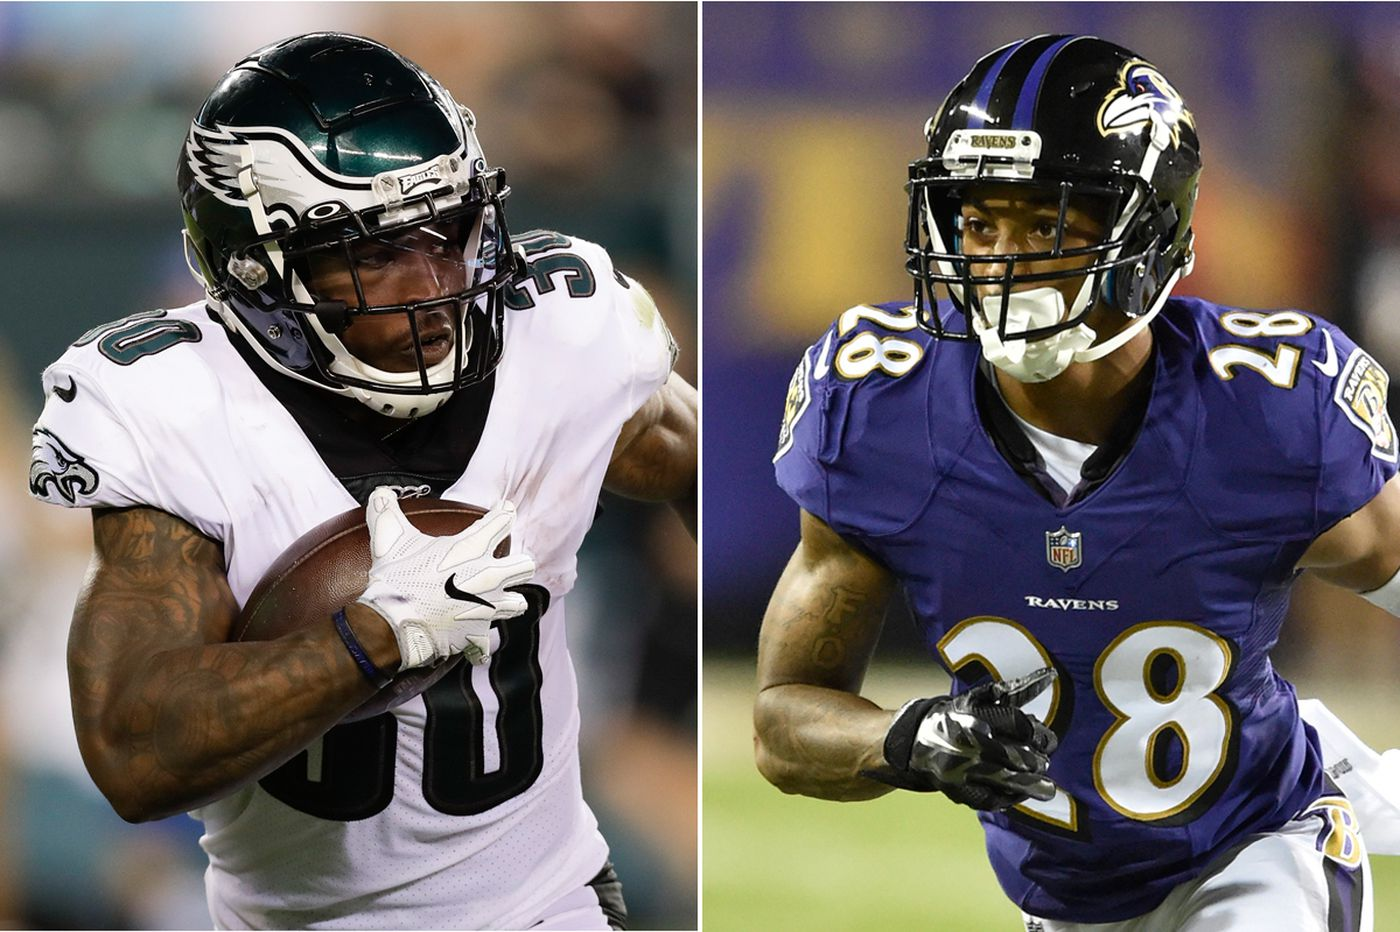 Eagles' Corey Clement and Ravens' Anthony Averett share South Jersey bond that endures